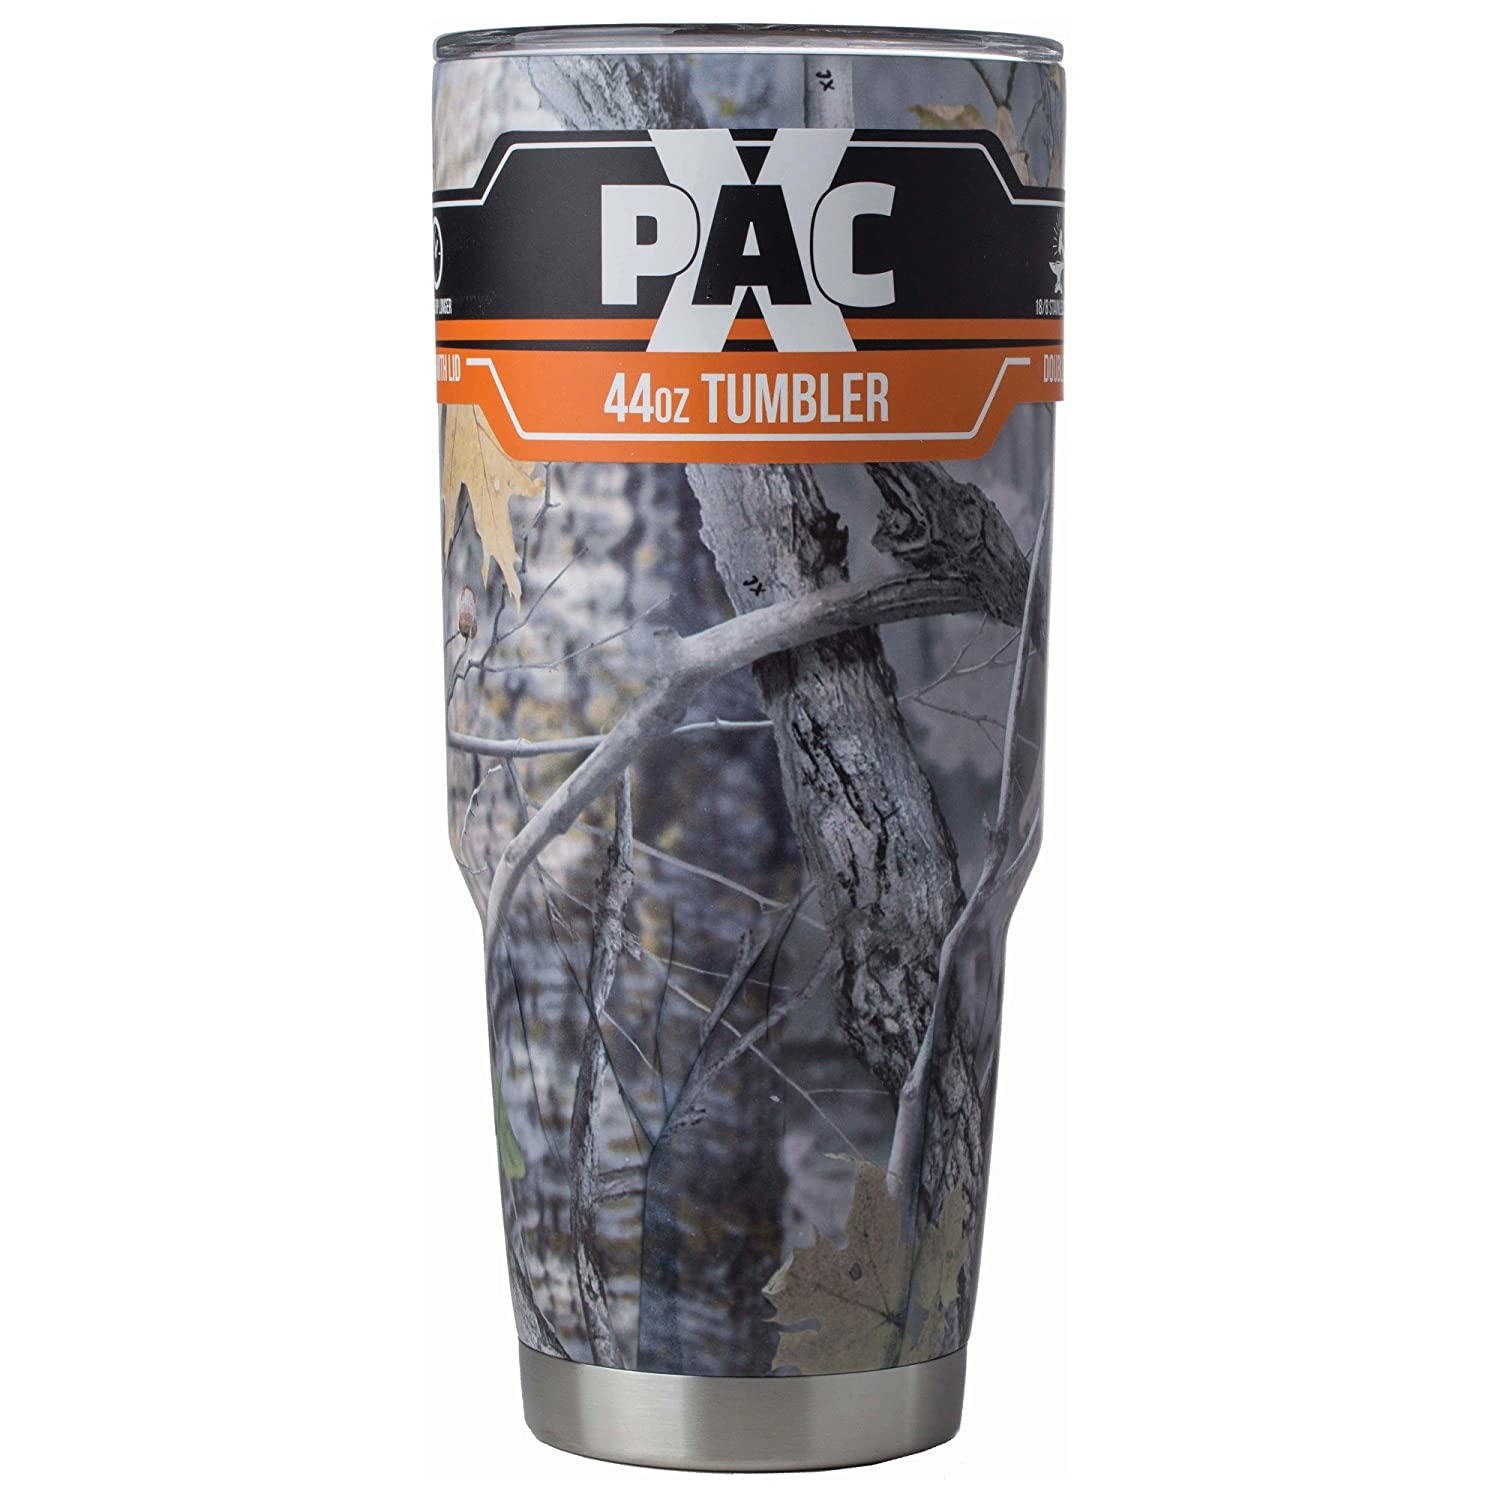 X-PAC Double Vacuum Wall Stainless Steel Tumbler with Lid, Pure Insulated Tumbler Keeps Cold Beverages Cold and Hot Beverages Hot, 44 Ounce, Camo (CAMO)